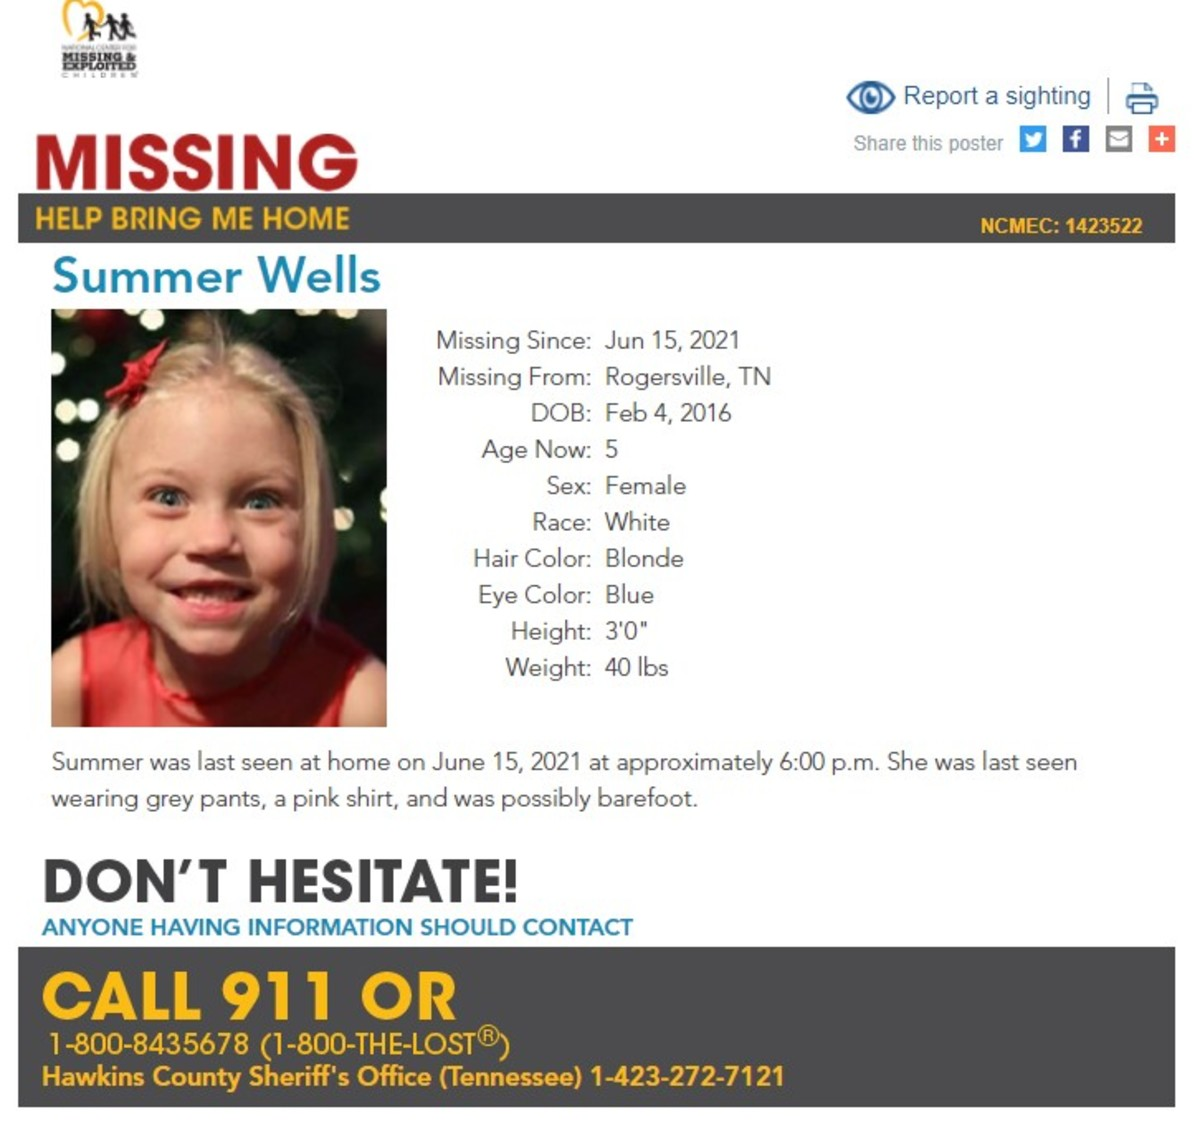 Summer Wells is listed as missing with the nonprofit group National Center for Missing & Exploited Children. Photo courtesy of NCMEC.